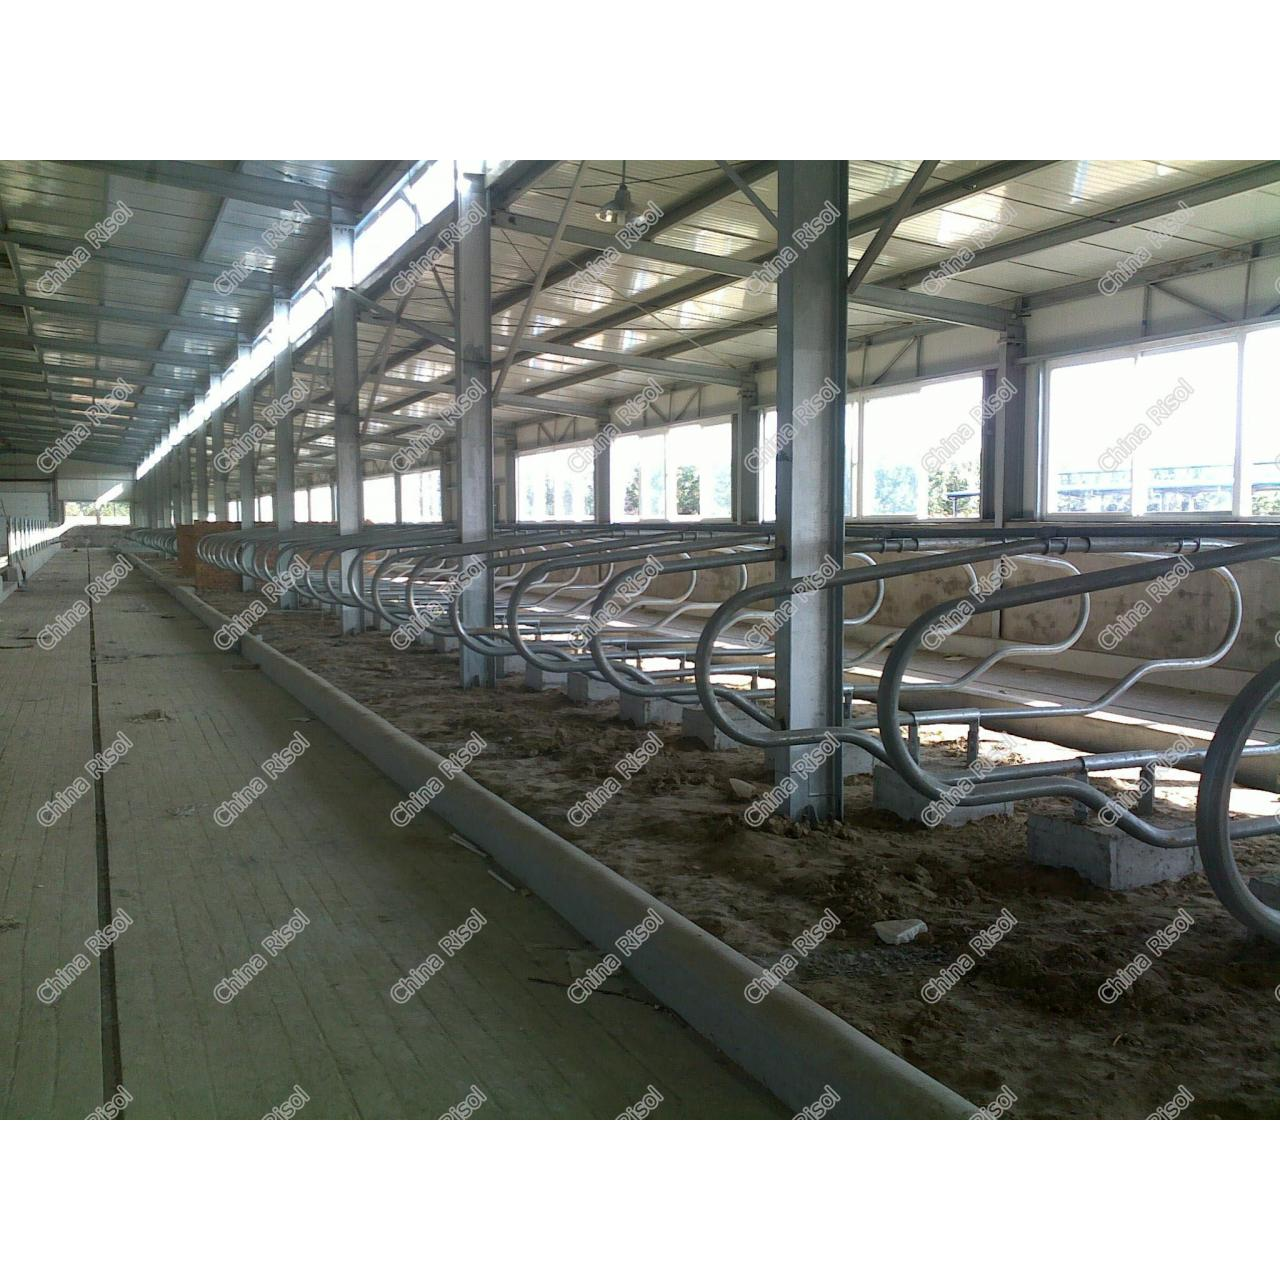 Cattle free stall